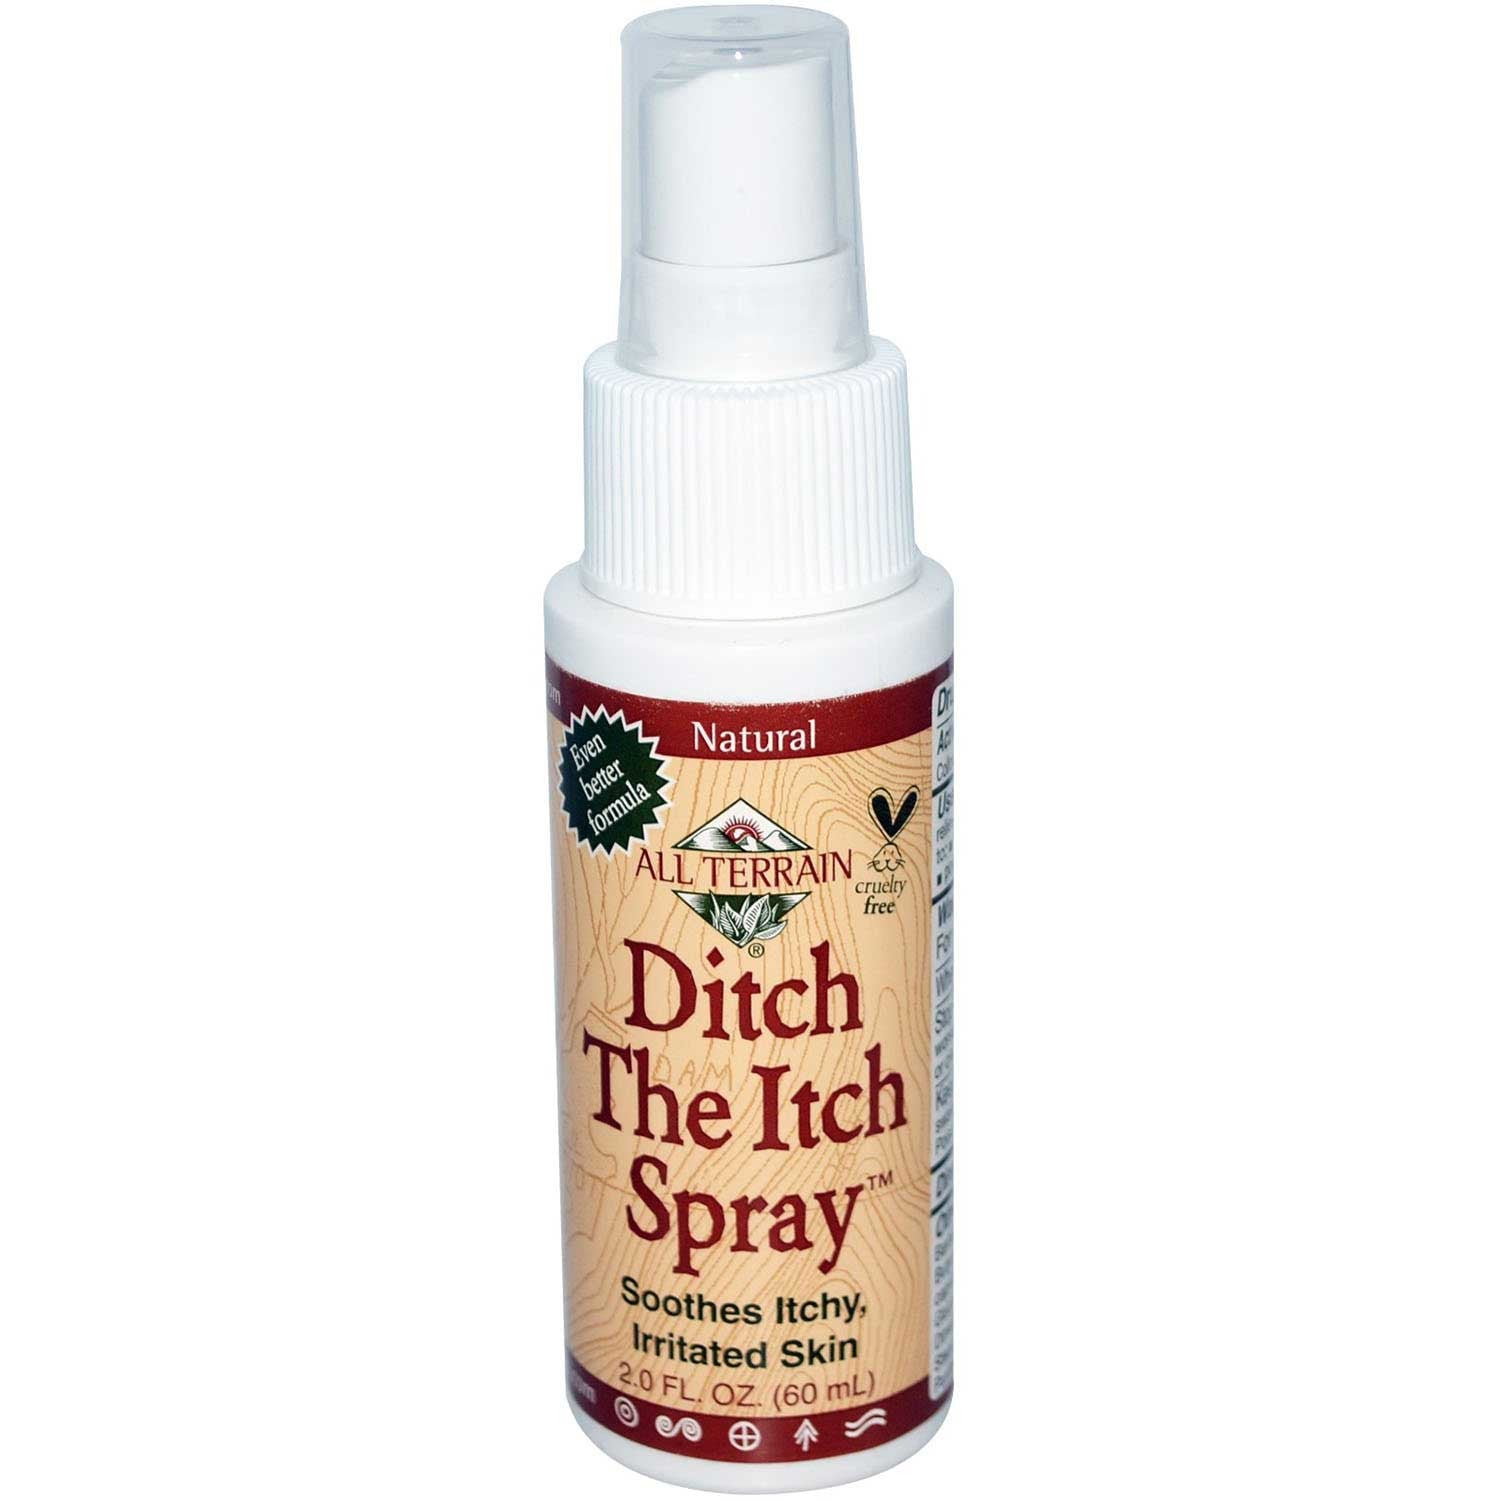 All Terrain Ditch The Itch Spray, 60 ml.